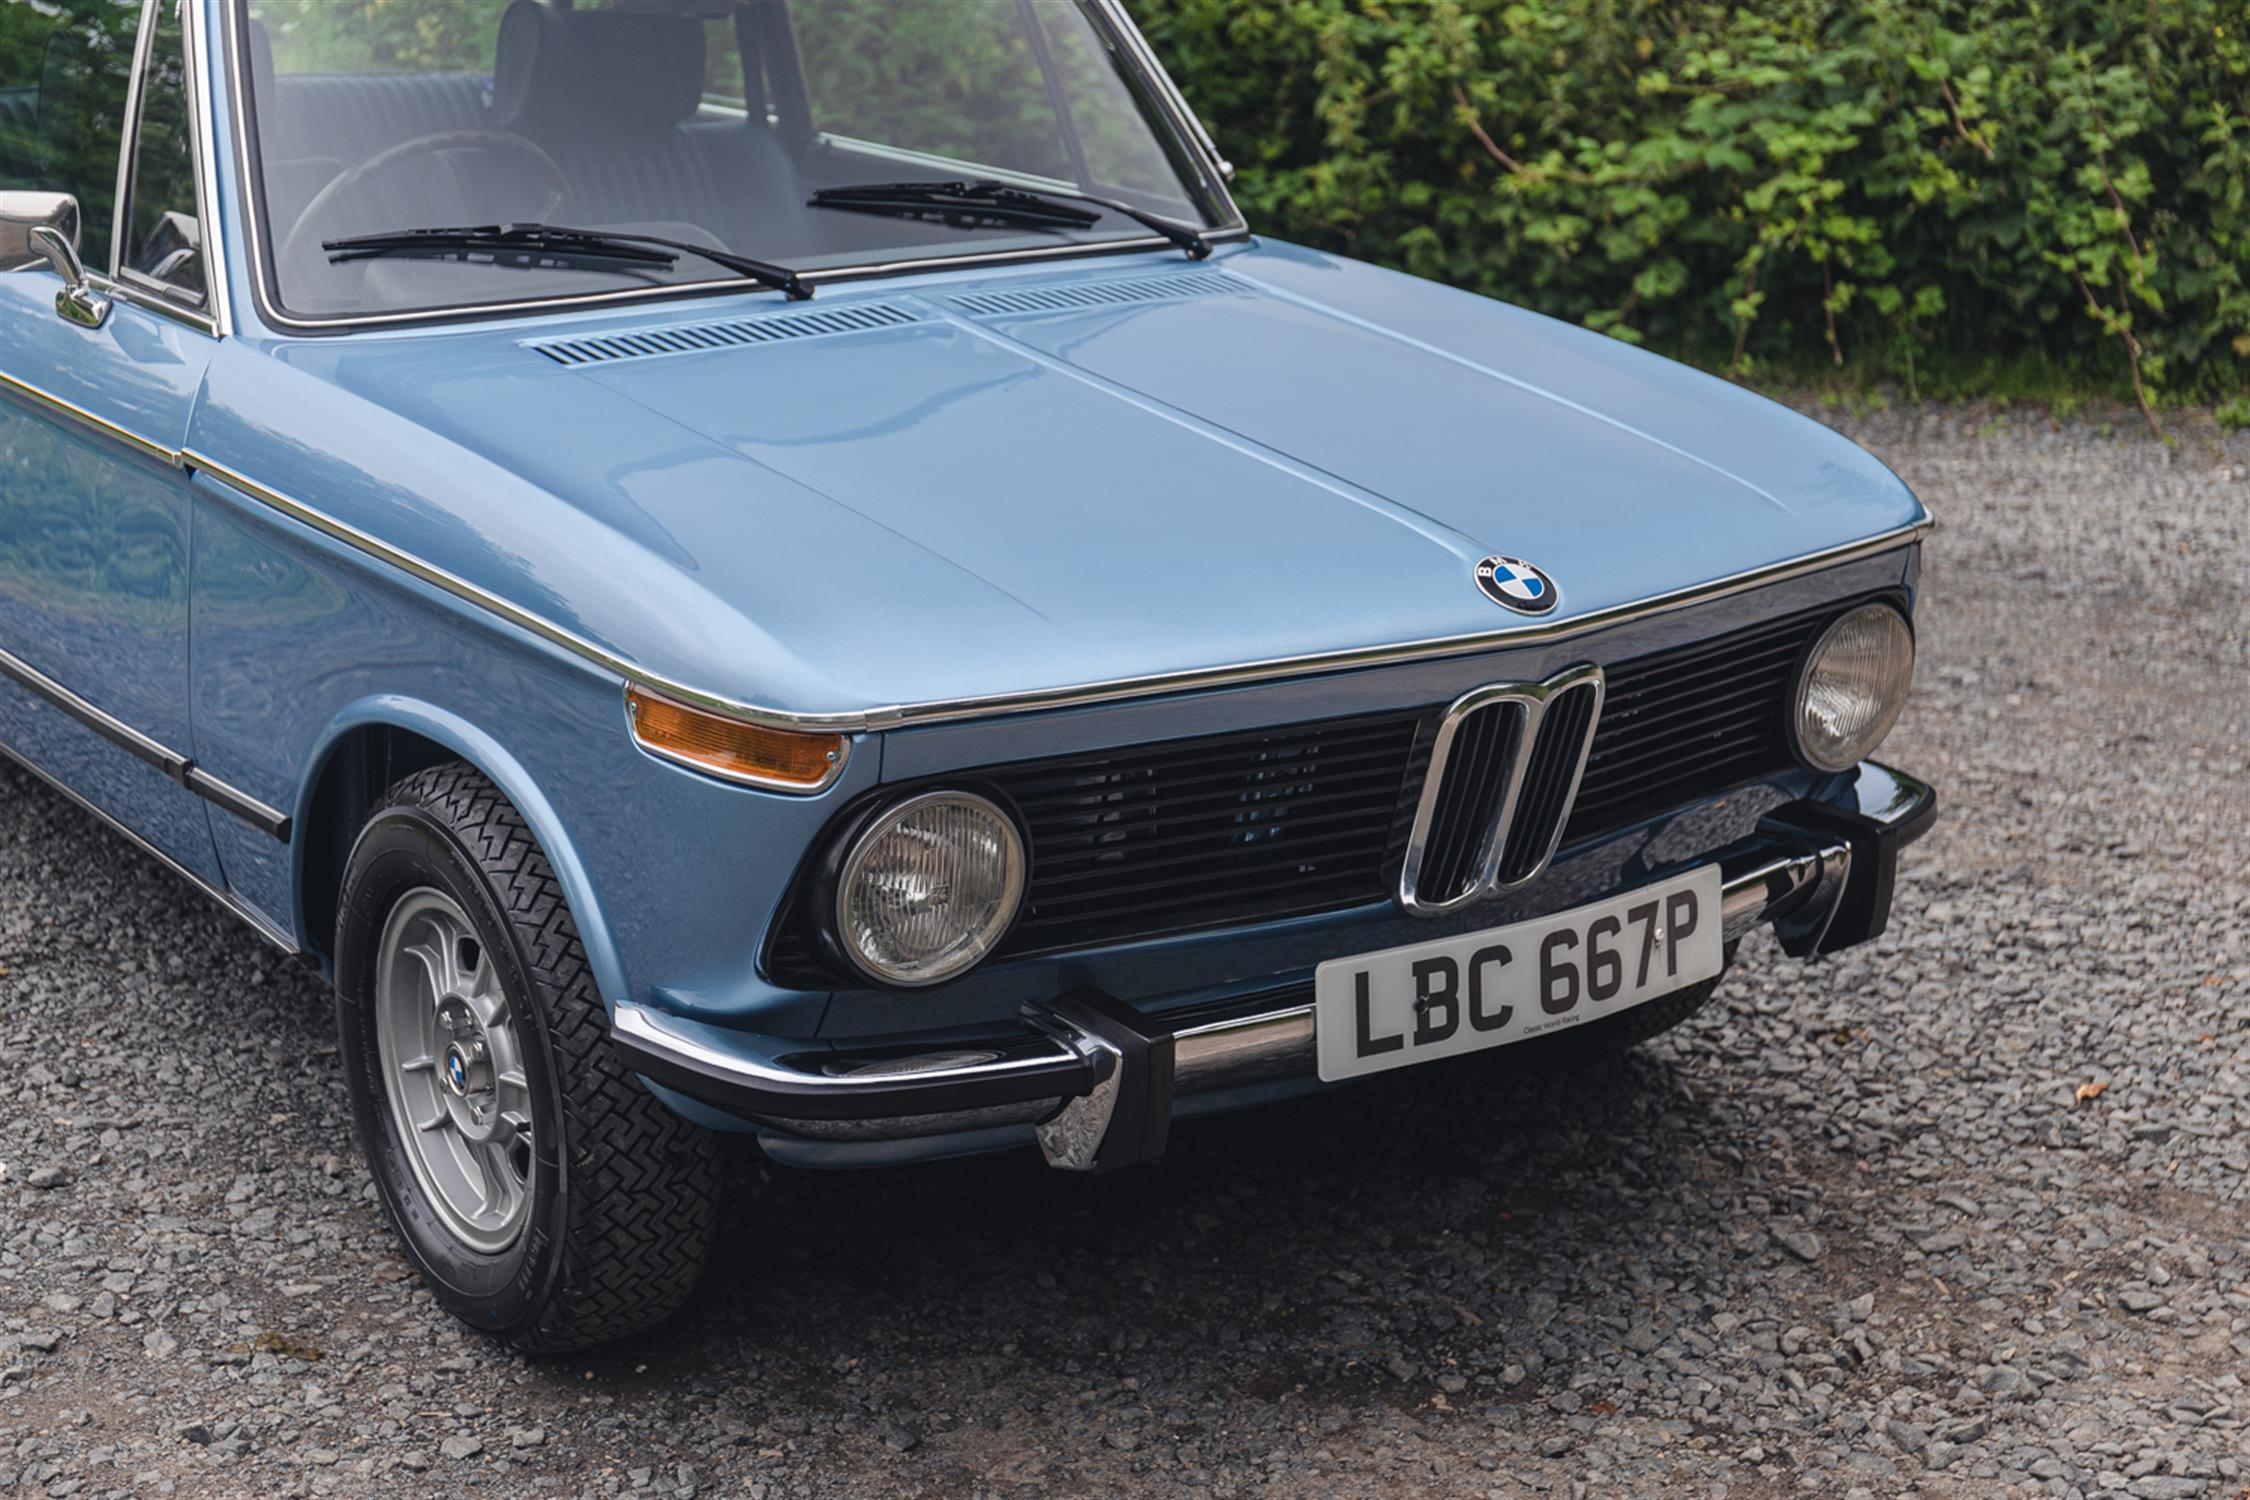 1975 BMW 2002 Tii - Image 9 of 10